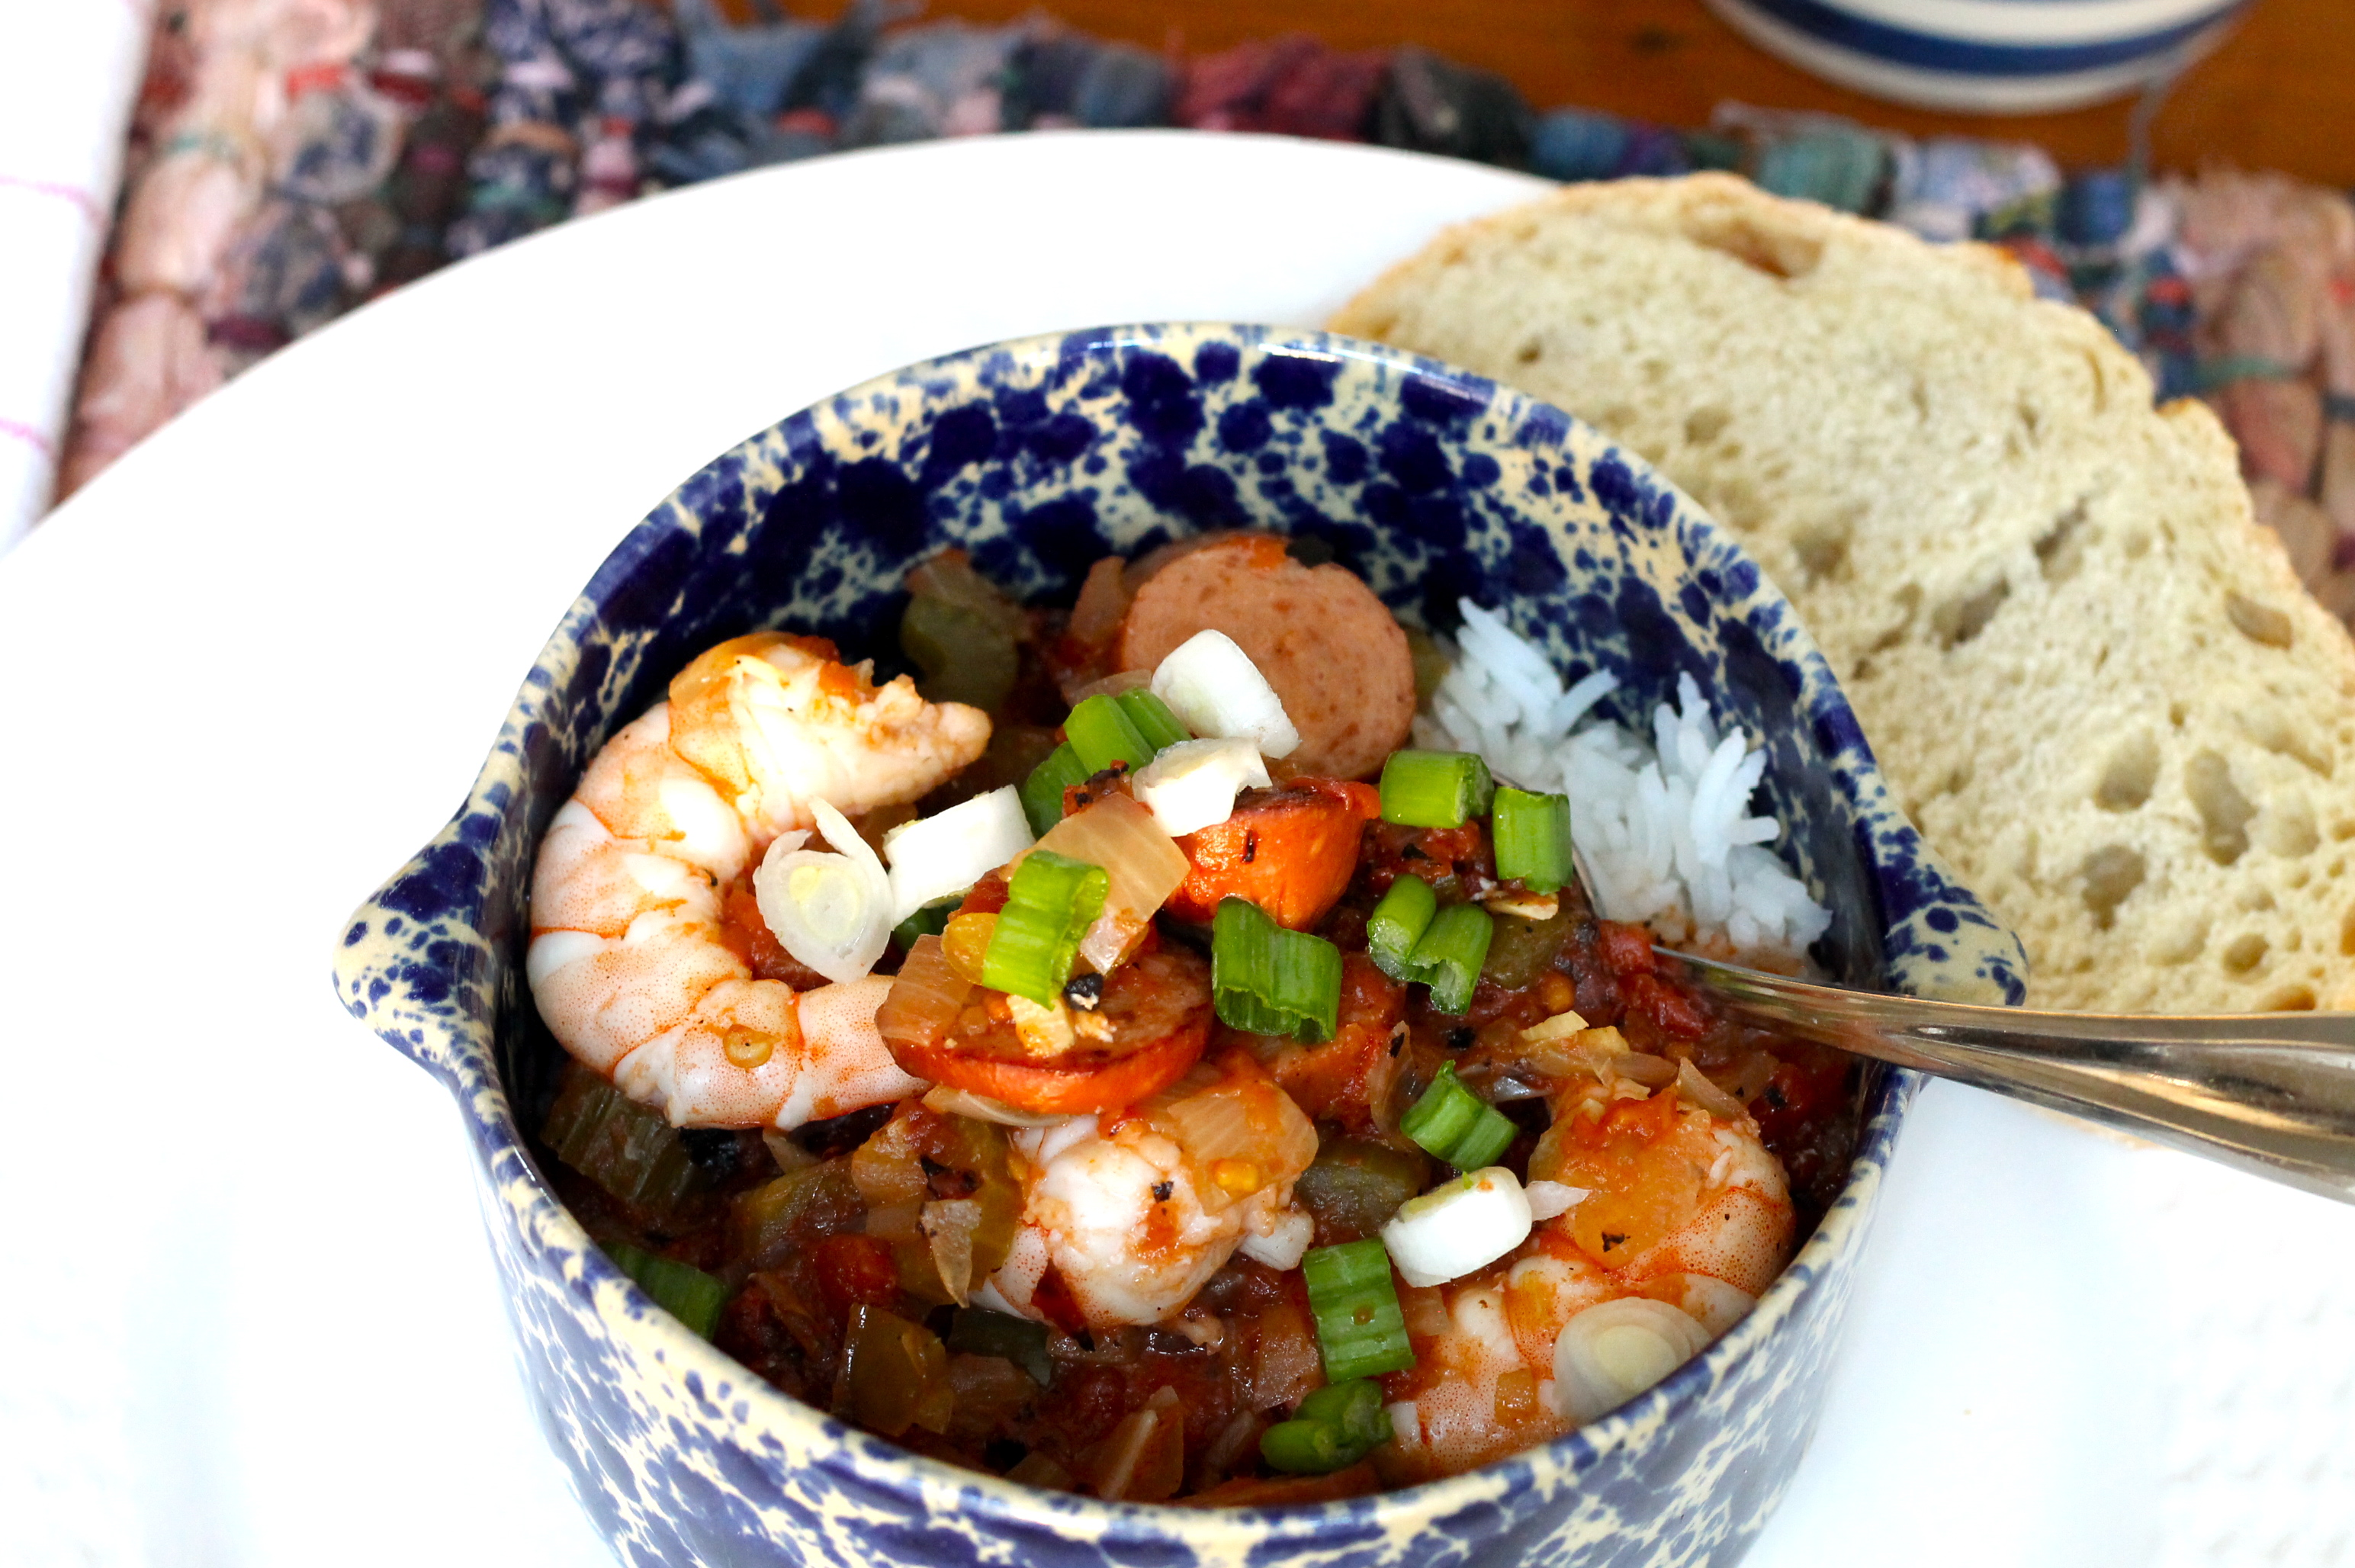 Slow cooker jambalaya with shrimp - The 2 Seasons